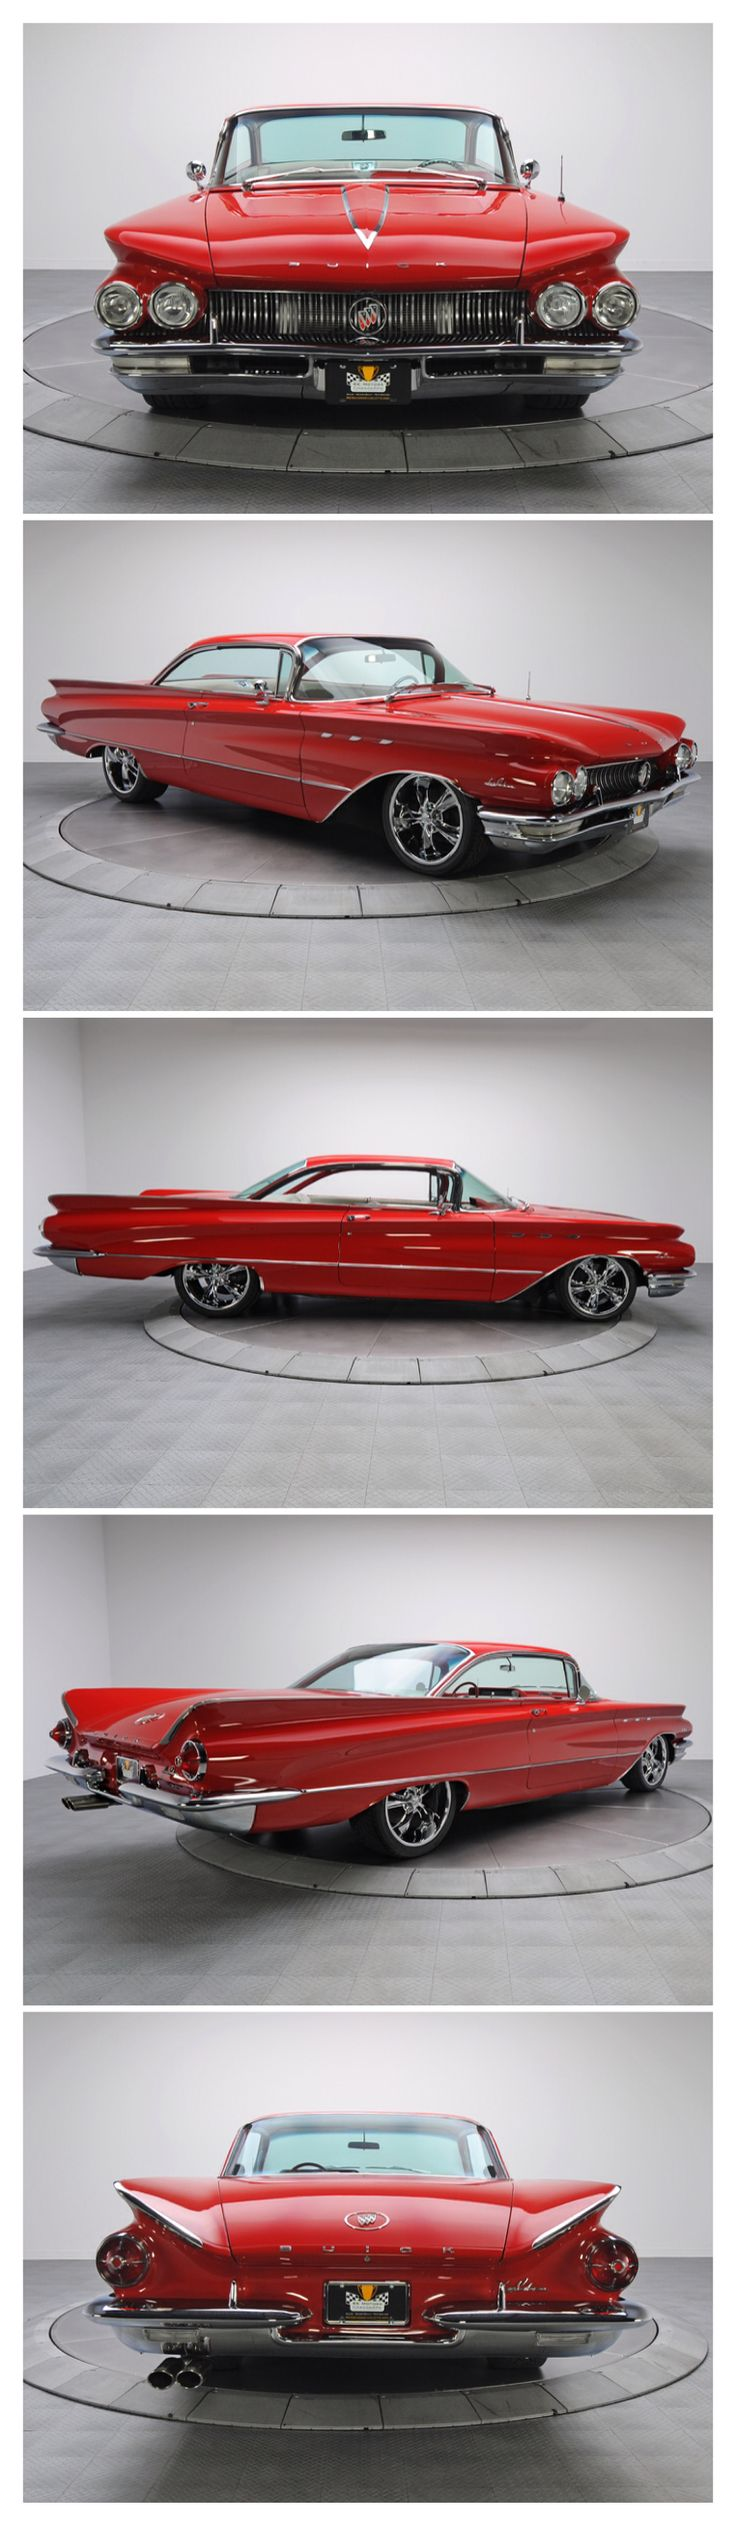 1960 #Buick Lesabre #Classic #Car #QuirkyRides #coupon code nicesup123 gets 25% off at  Provestra.com Skinception.com